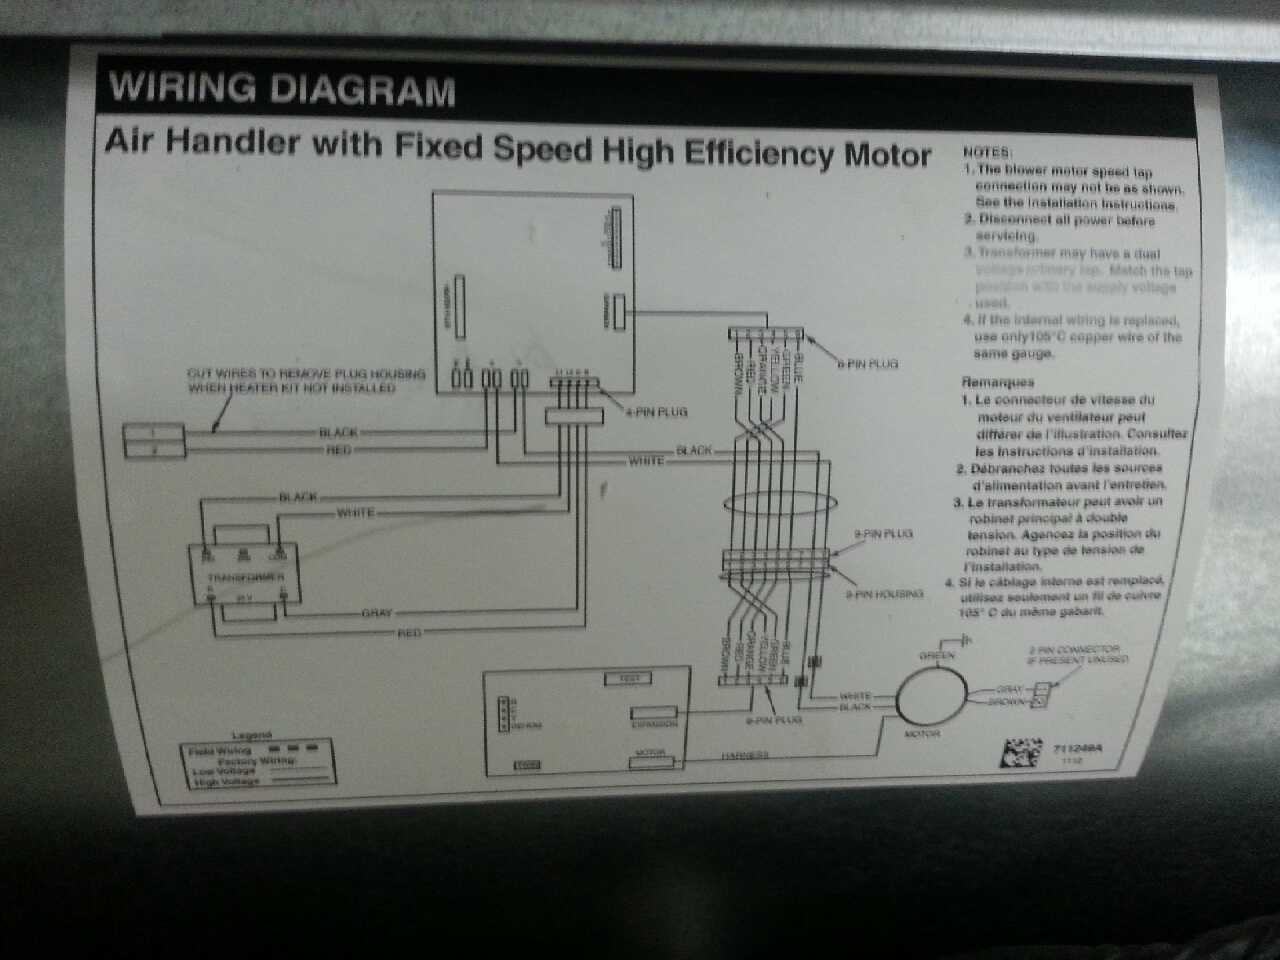 wiring diagram for ac unit thermostat hopkins agility brake controller letgo nordyne air handler in gatesville nc